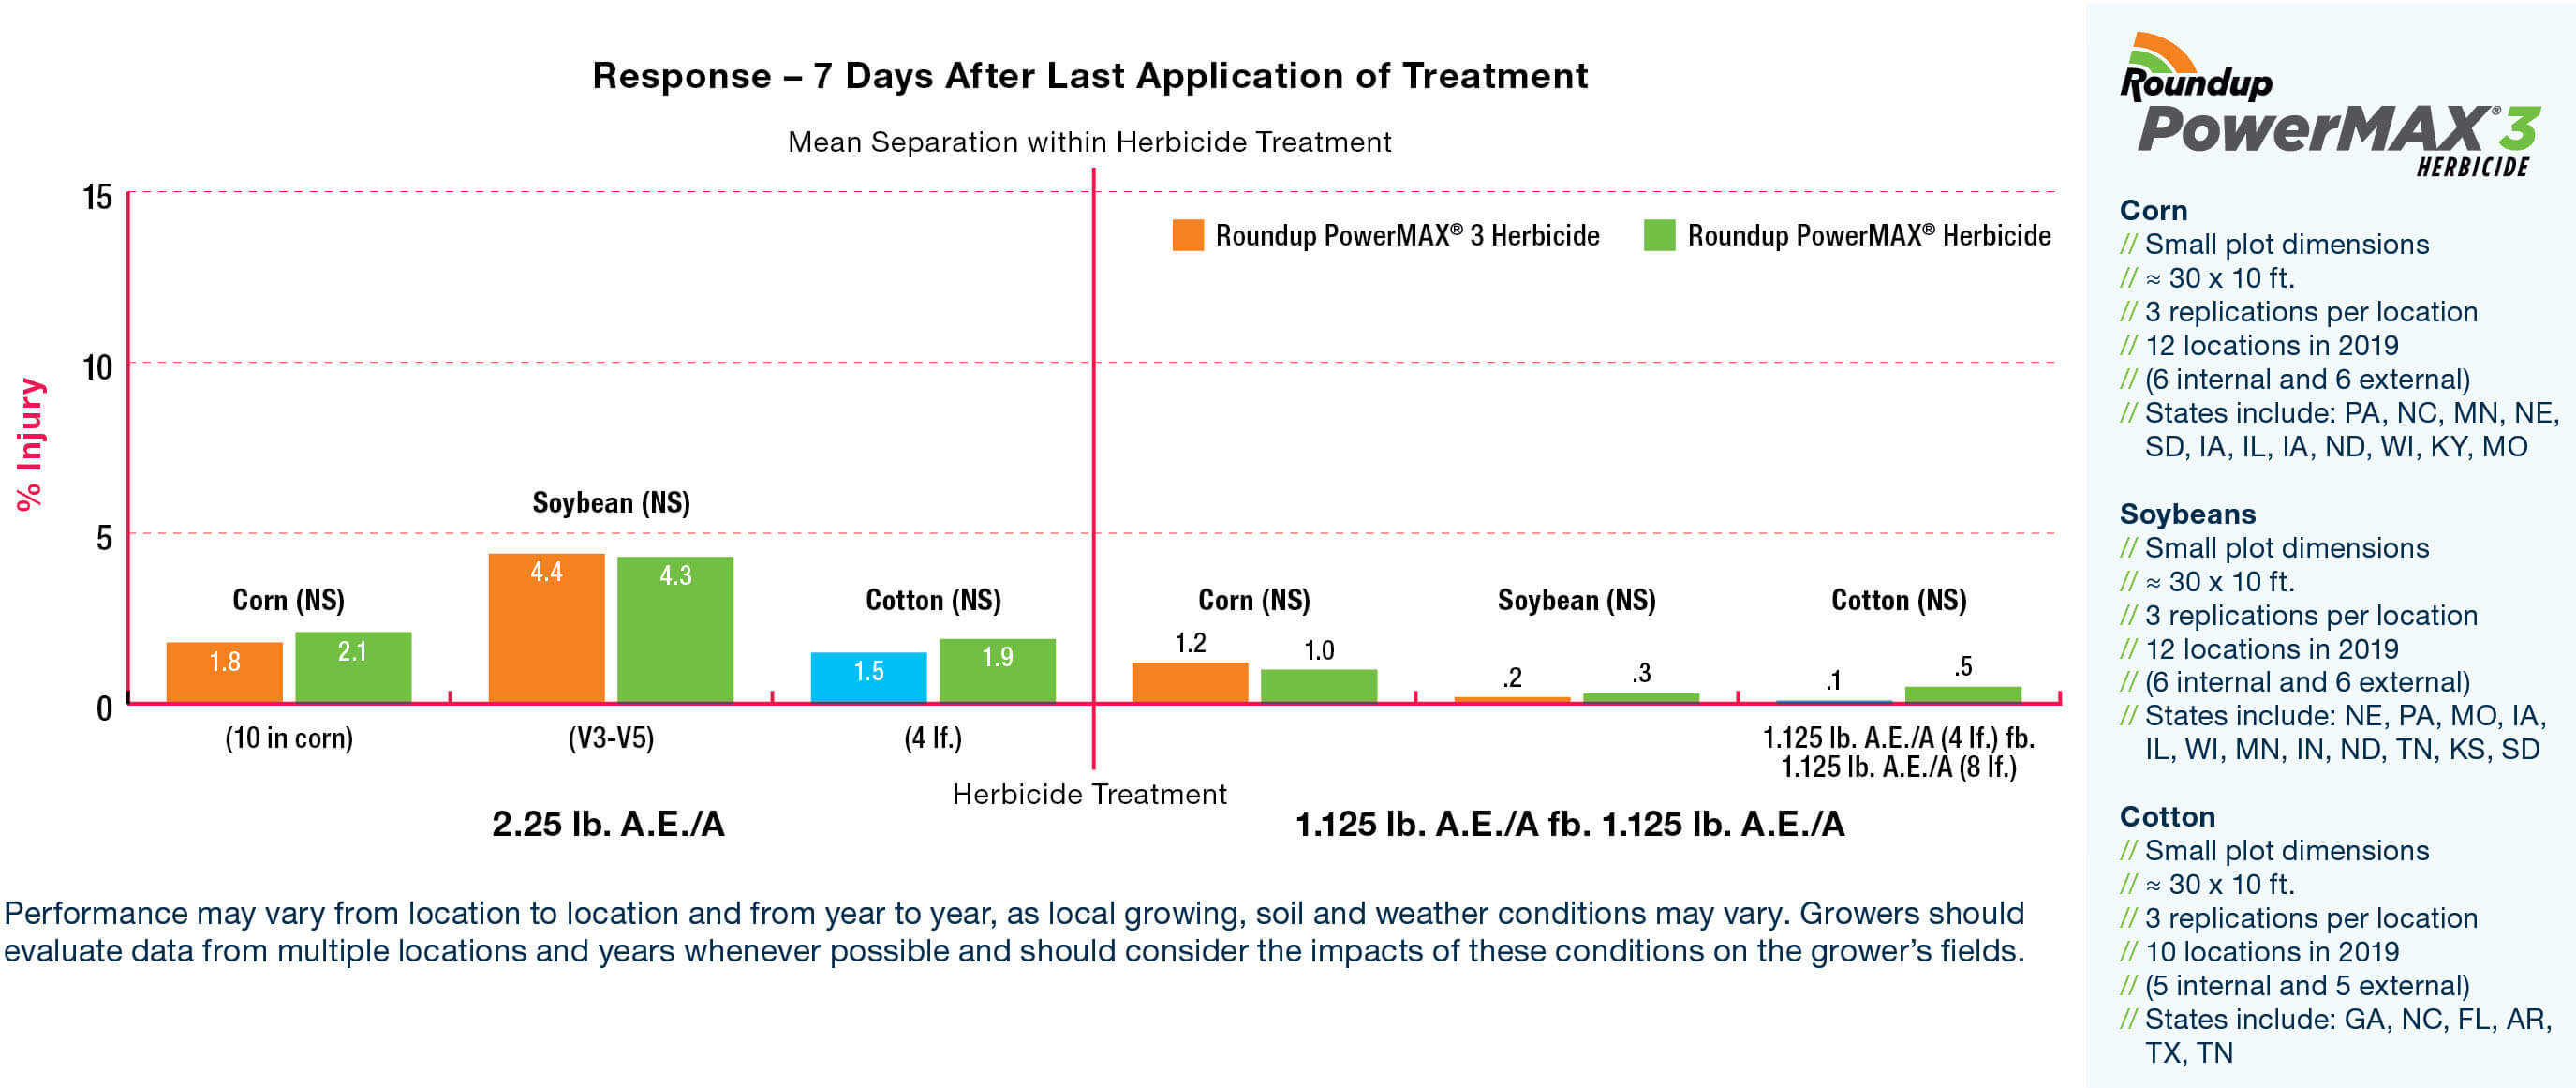 Roundup PowerMAX 3 herbicide performance response 7 days after last application treatment for corn, soybeans and cotton